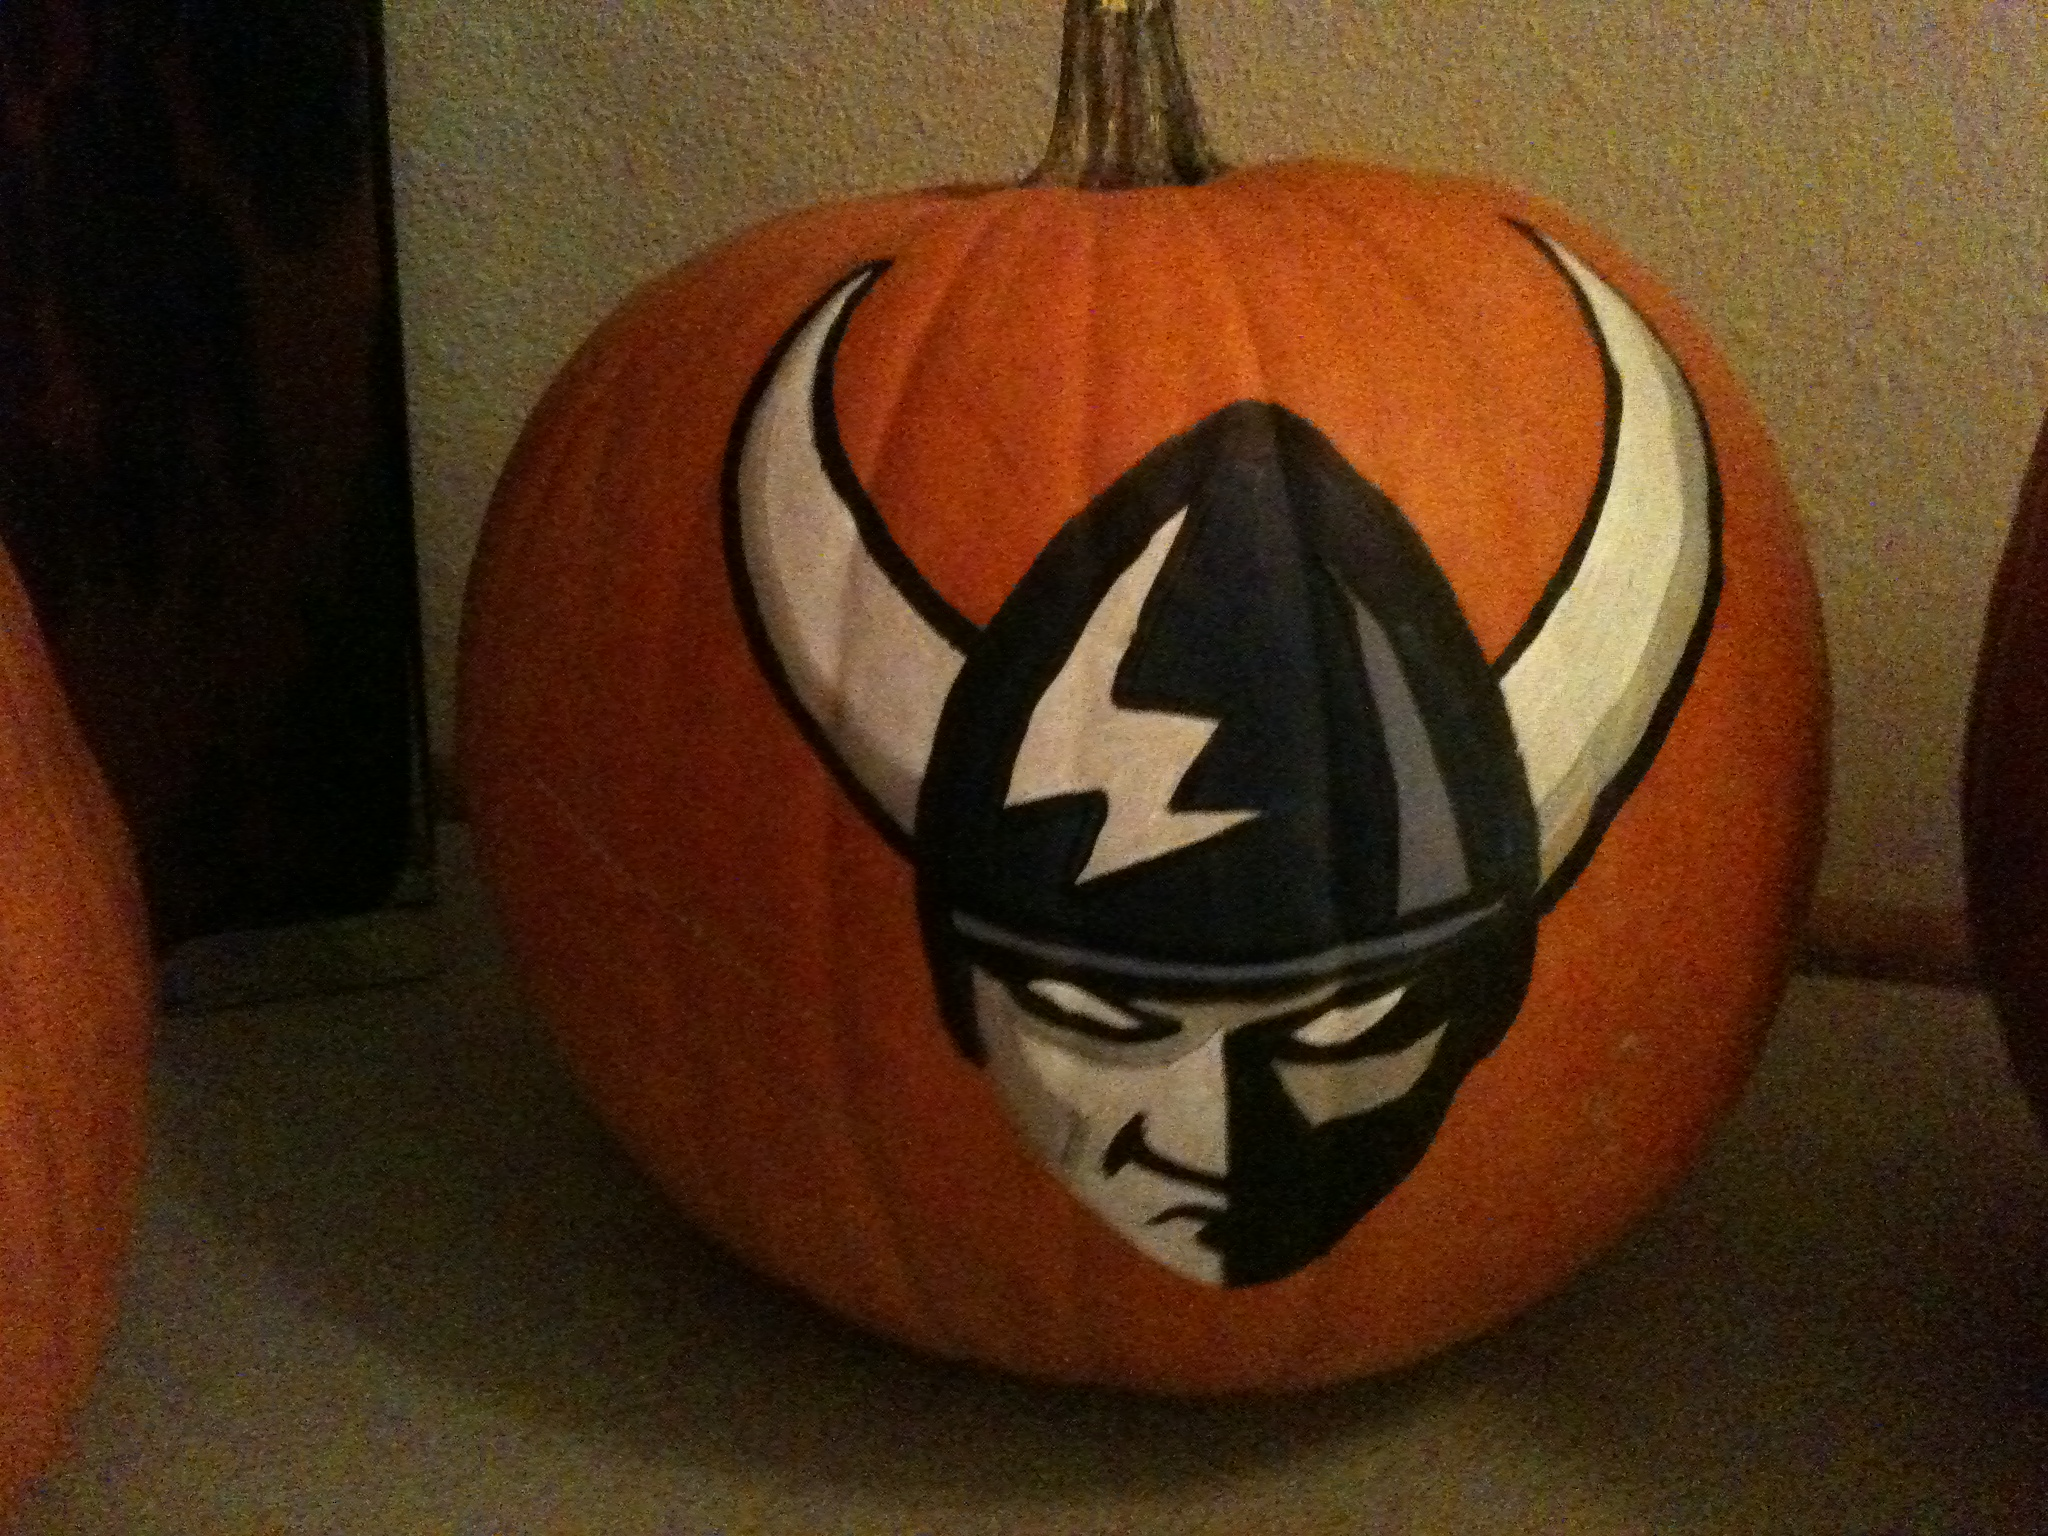 Custom handpainted pumpkins